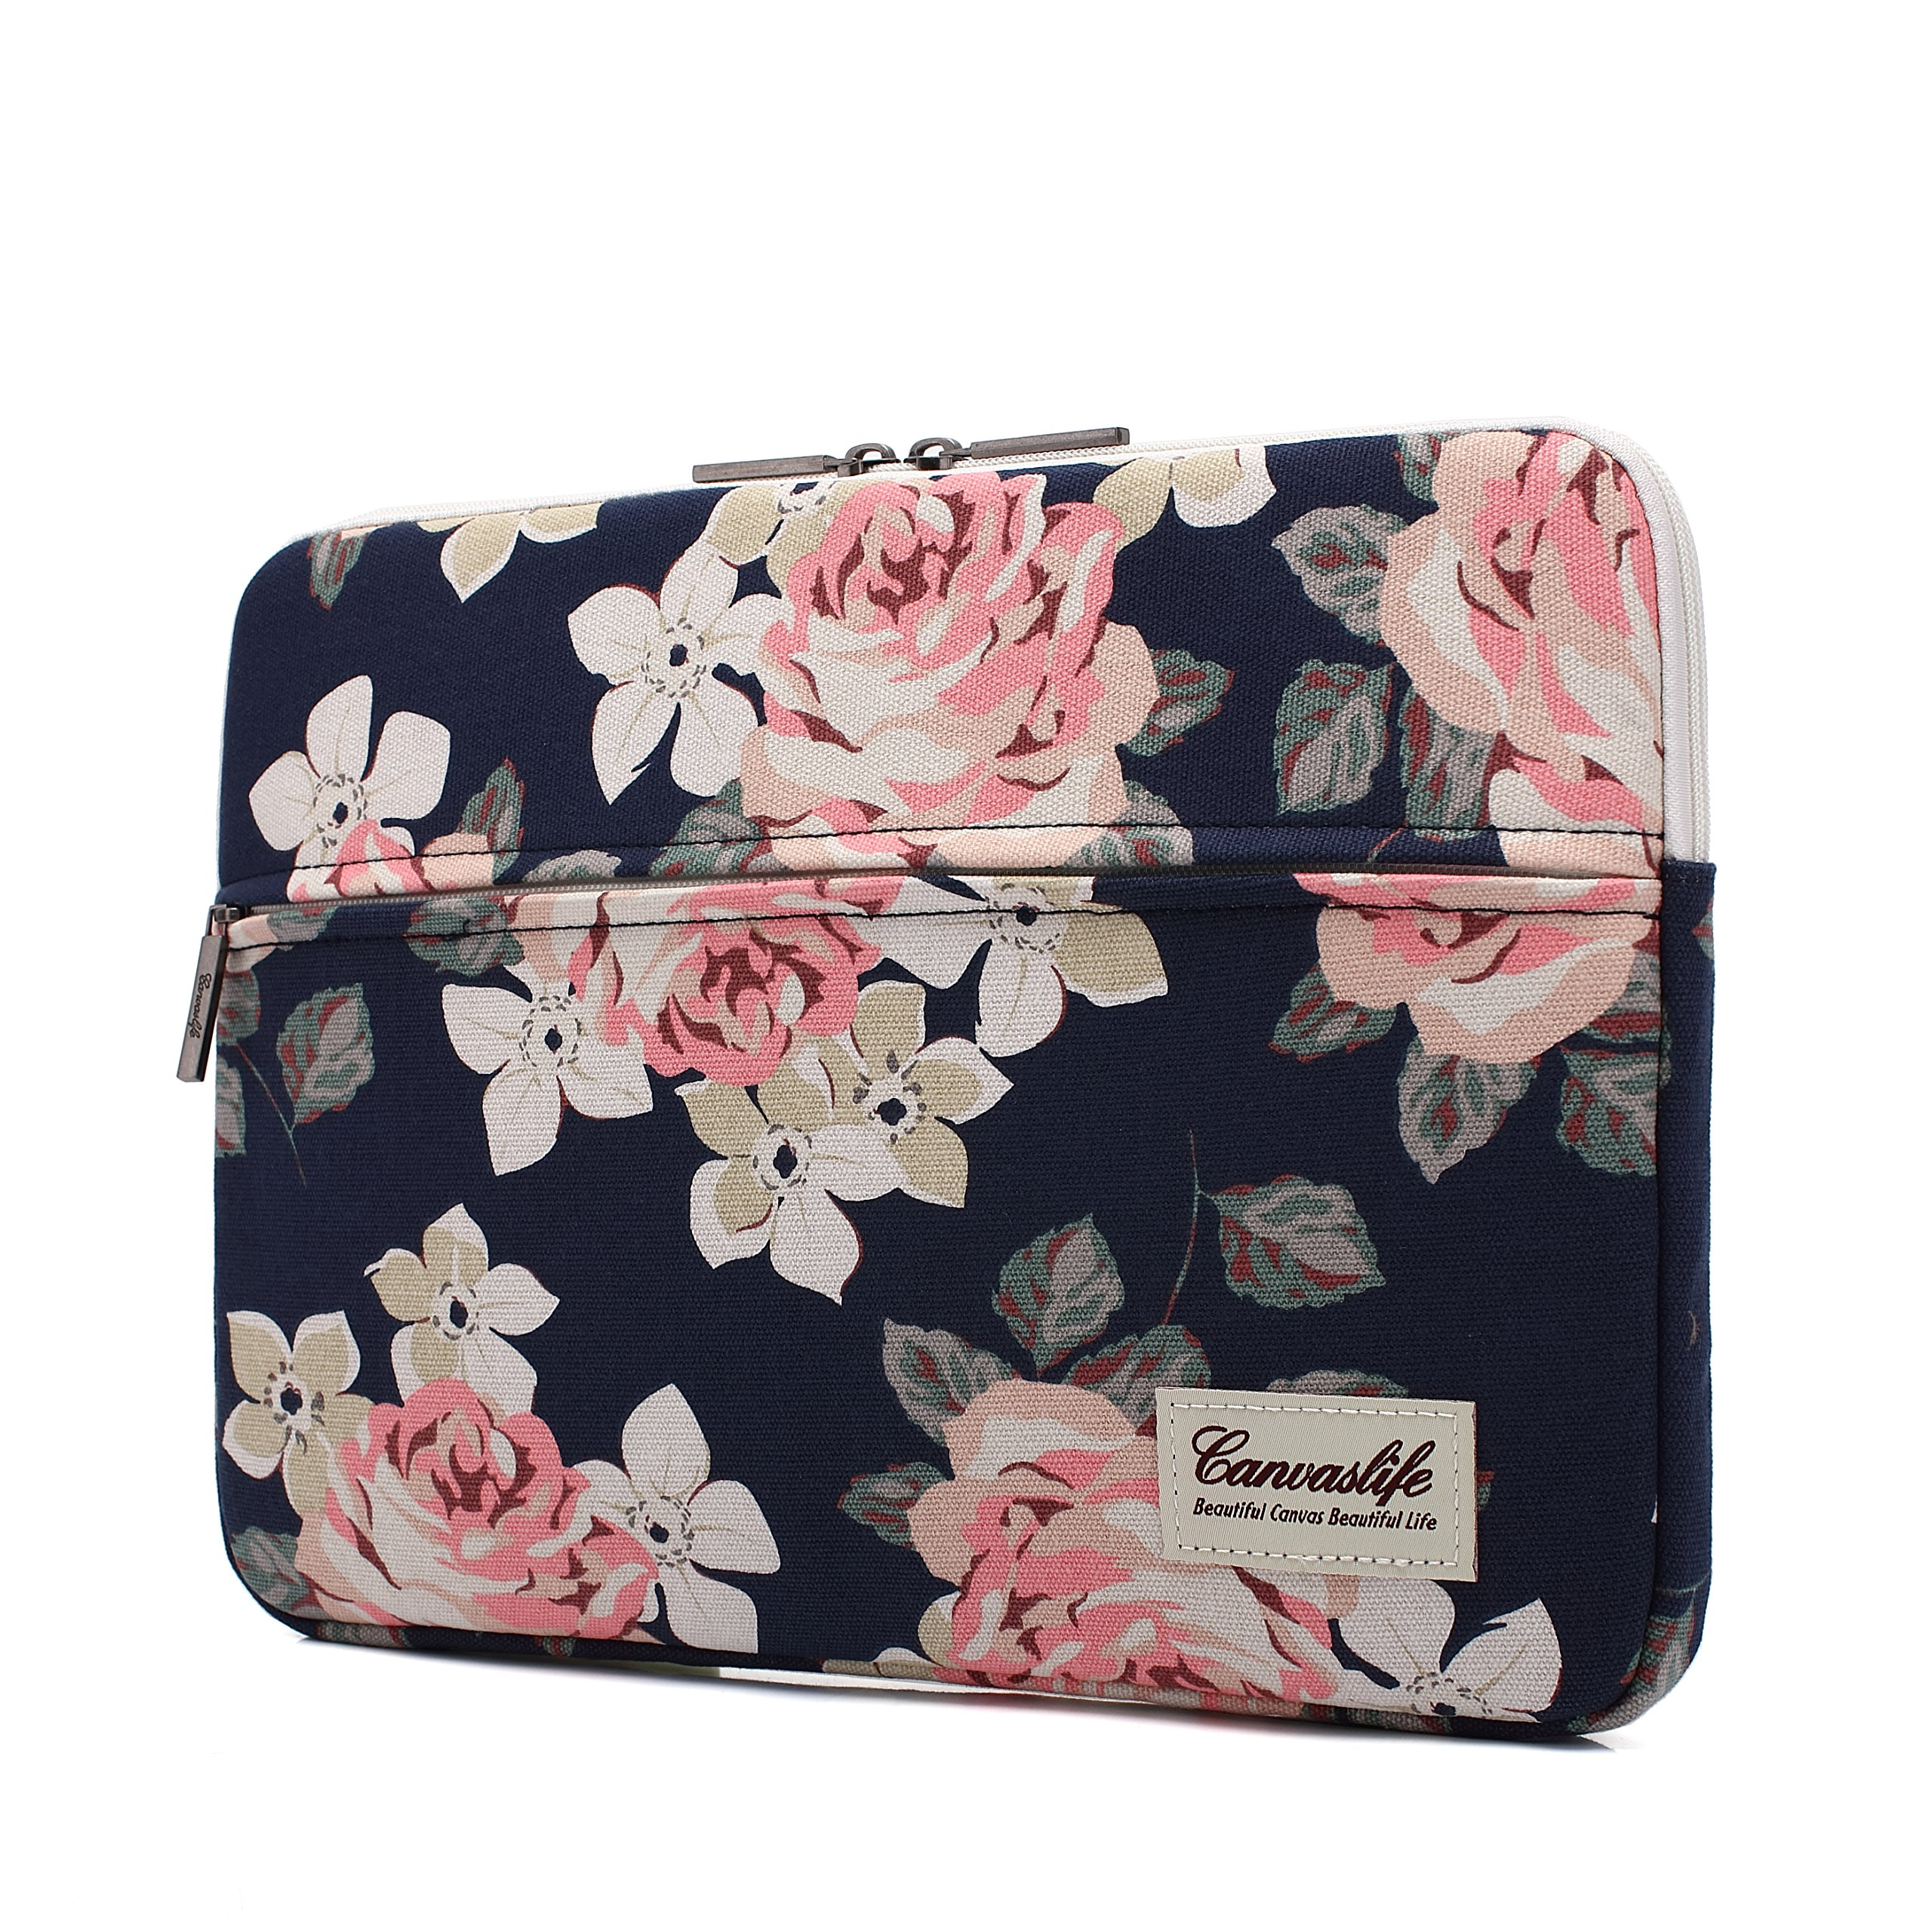 Canvaslife White Rose Pattern 13 inch Canvas laptop sleeve with pocket 13 inch 13.3 inch laptop case by Canvaslife